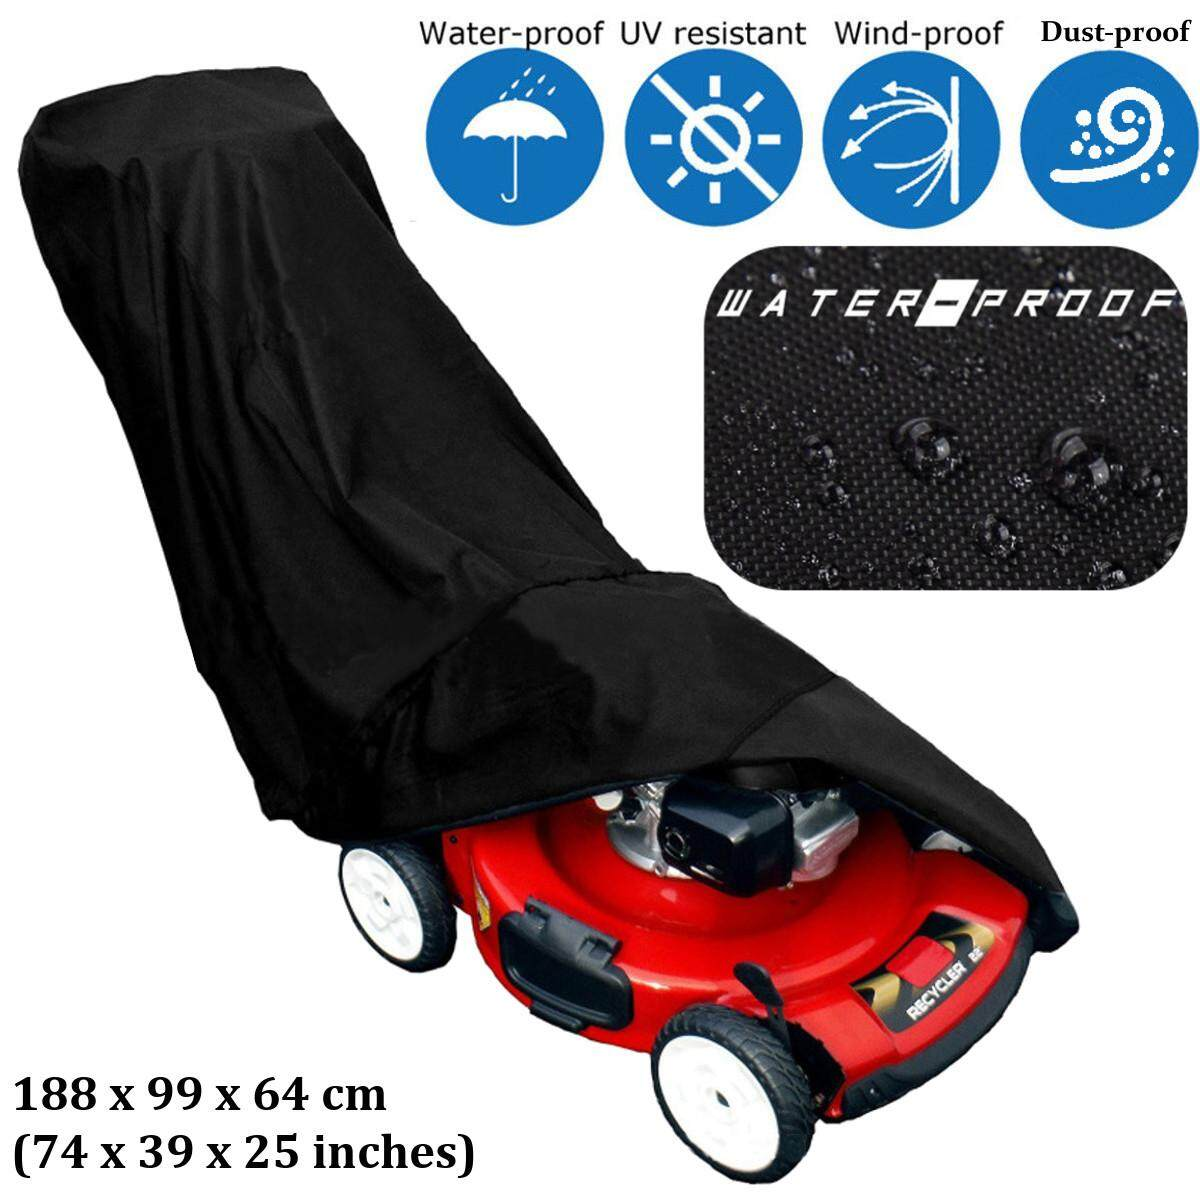 Durable 420D PA Waterproof Fabric Lawn Mower Protective Storage Cover